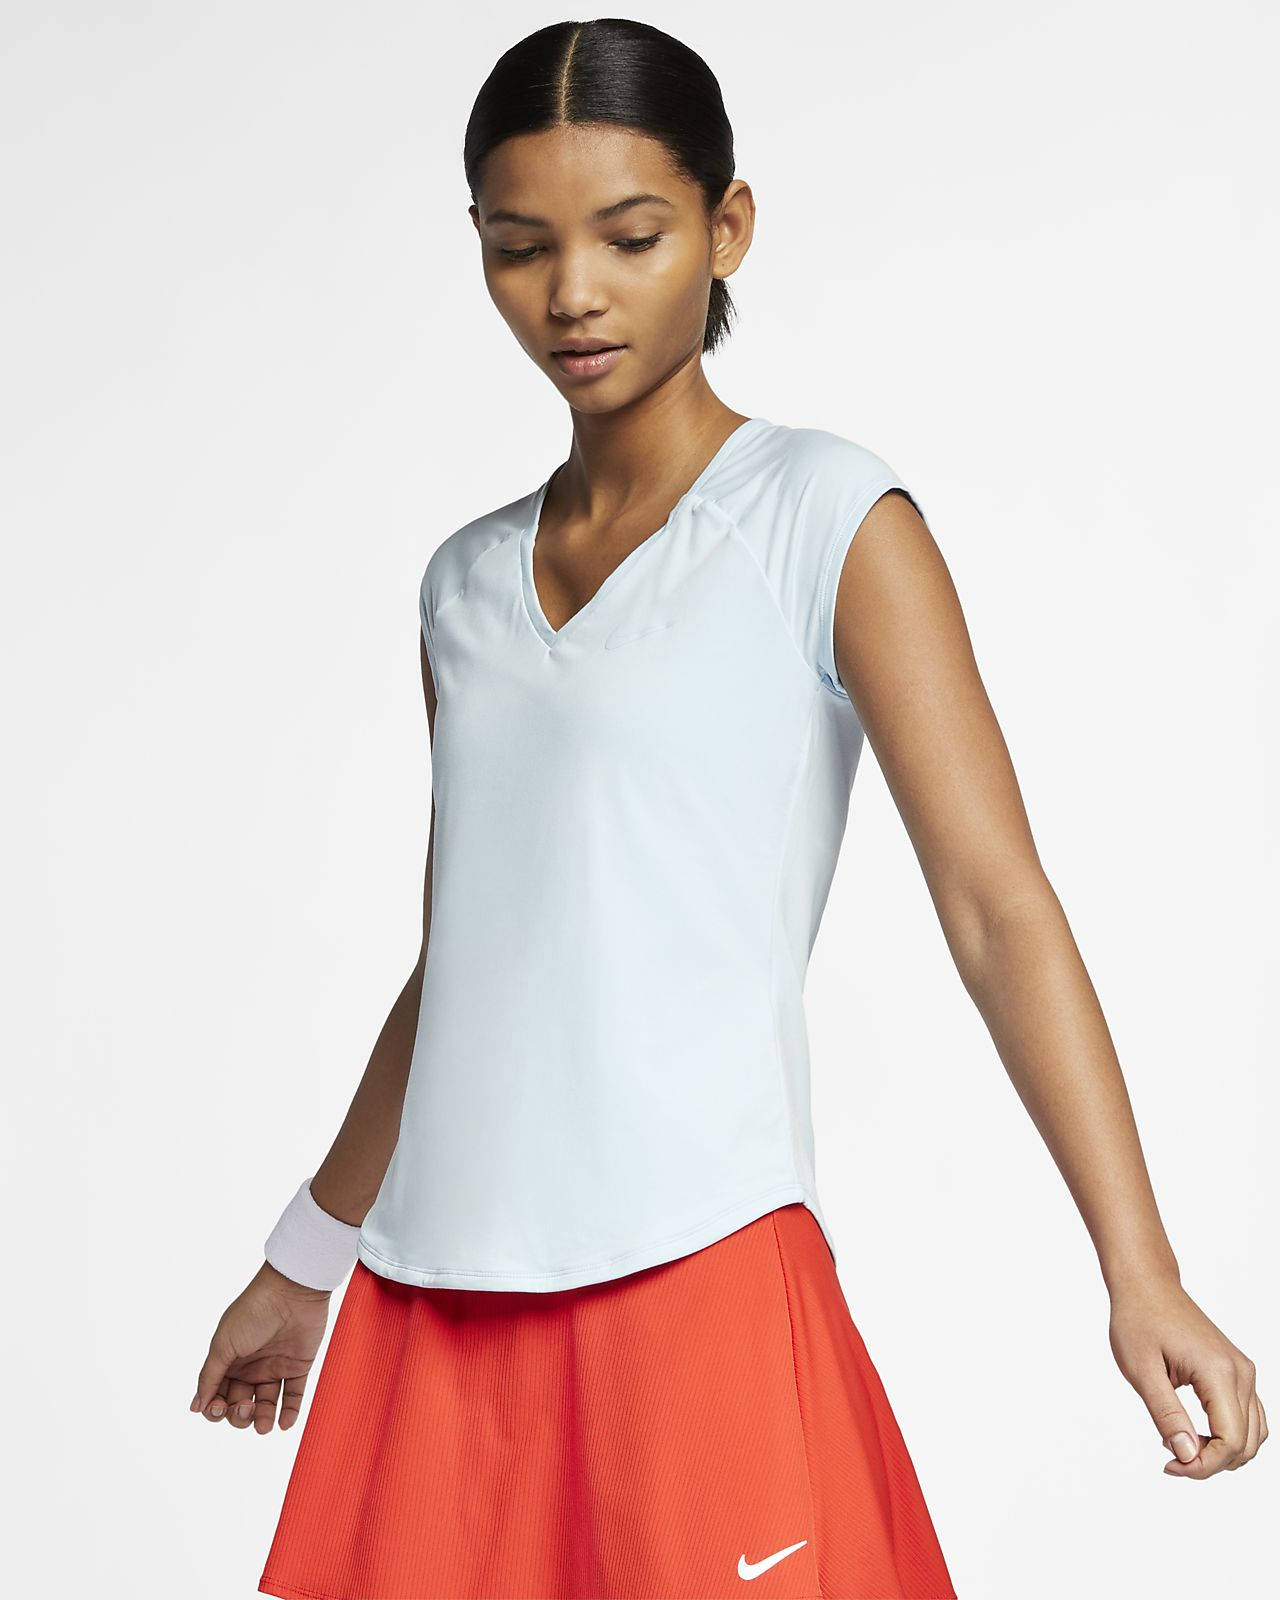 07766eb123c8 NikeCourt Pure Women s Tennis Top. Nike.com